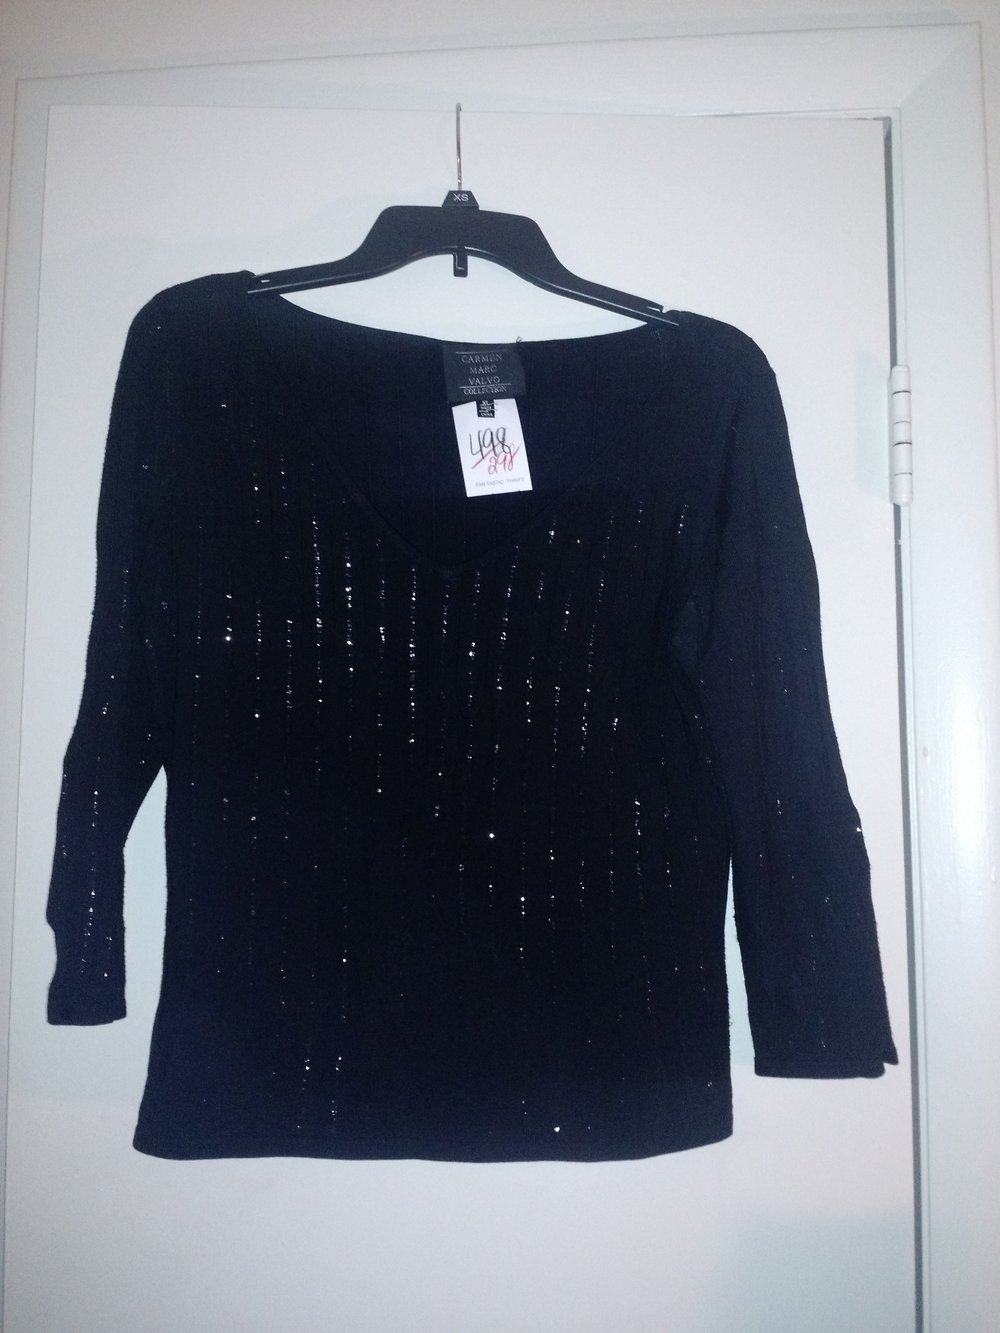 This is a simple black 3/4 sleeve shirt. Sequins done right! A shirt like this is perfect for Christmas and the holidays